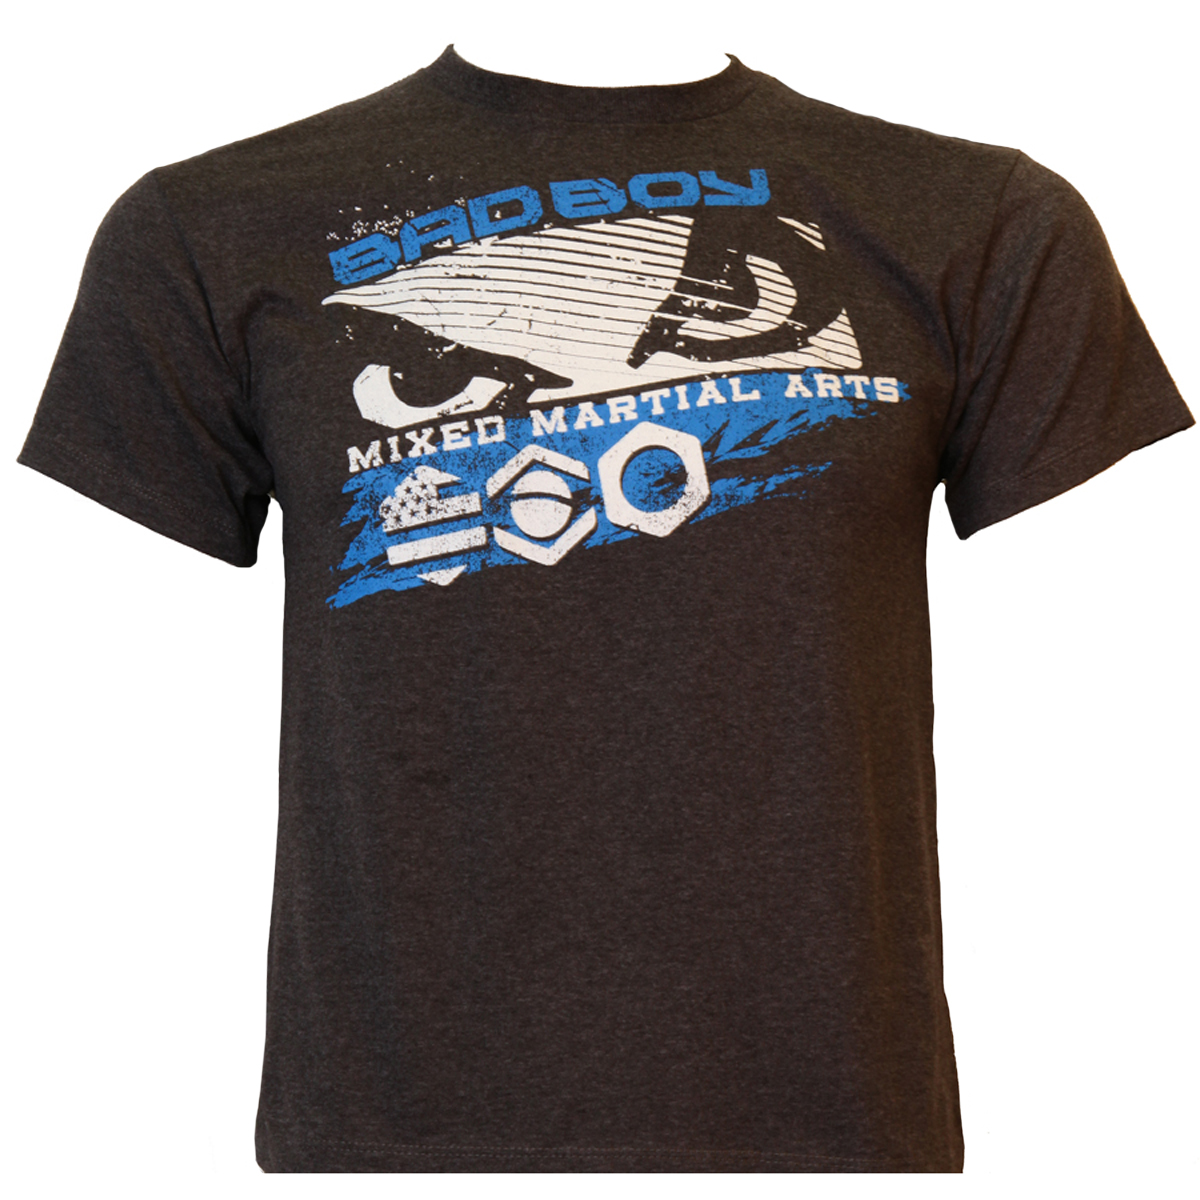 Bad Boy Youth Big Brother T-Shirt - Charcoal/Blue